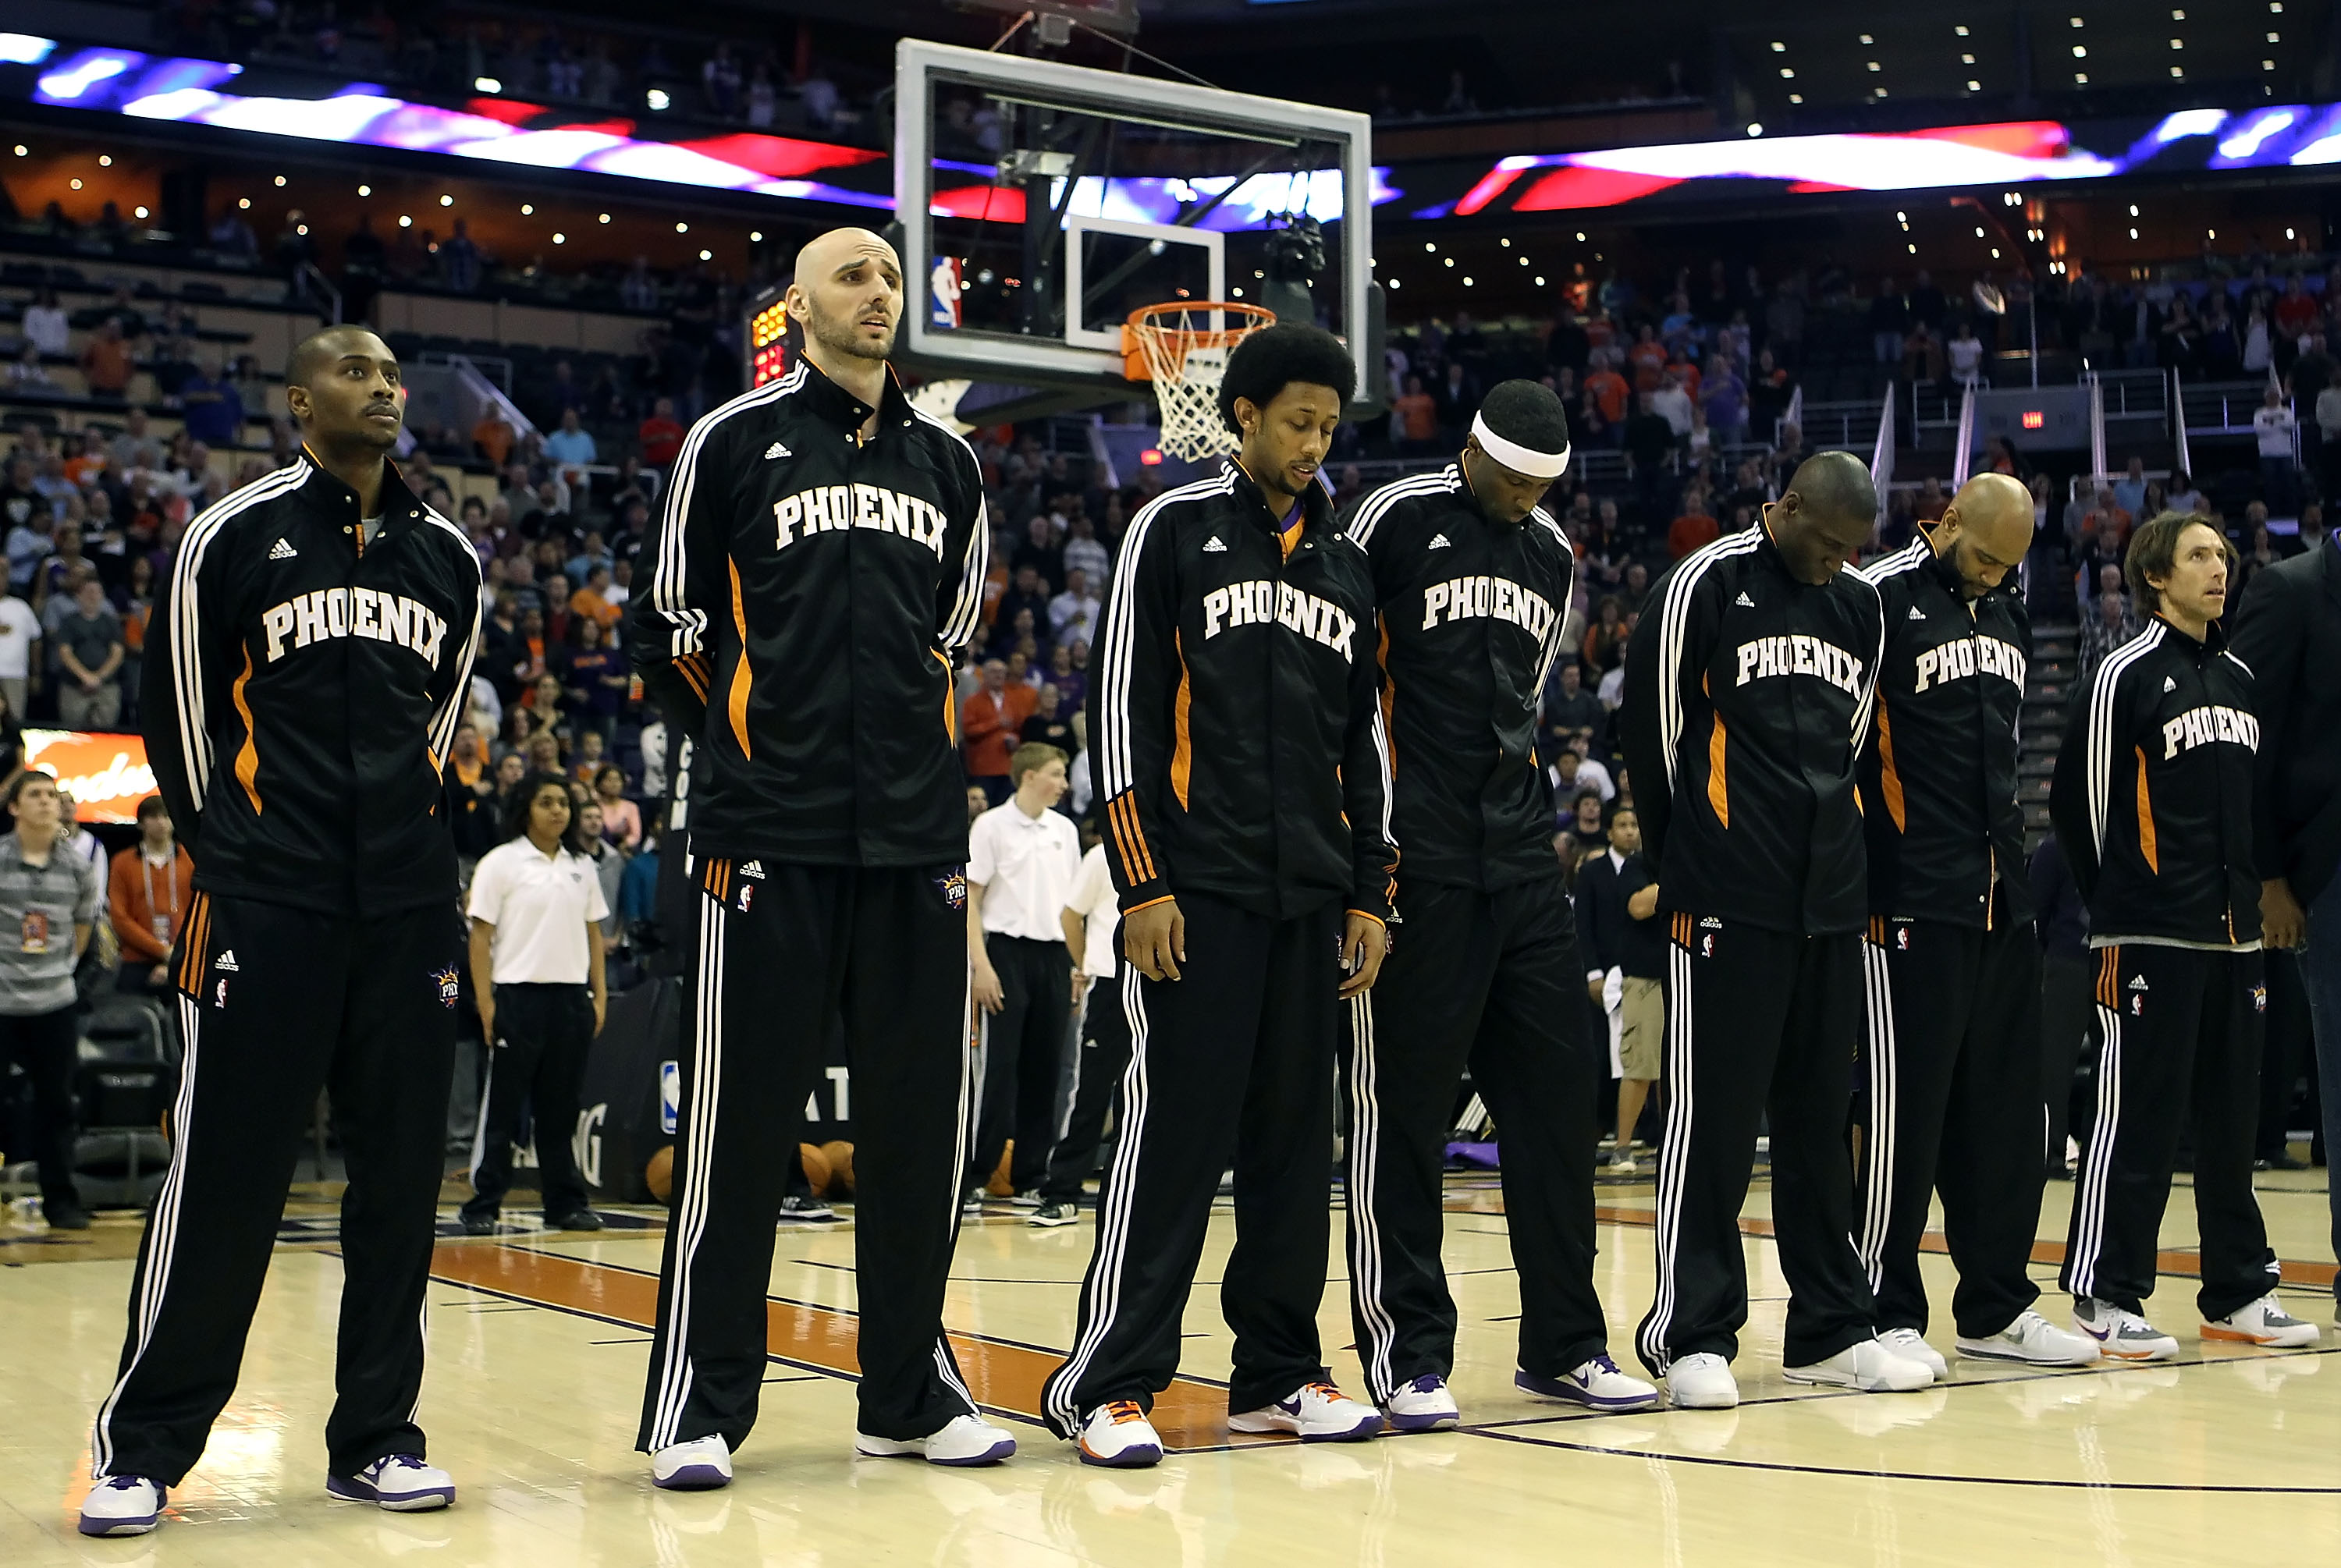 PHOENIX, AZ - JANUARY 14:  The Phoenix Suns stand attended for the National Anthem before the NBA game against the Portland Trail Blazers at US Airways Center on January 14, 2011 in Phoenix, Arizona. The Suns defeated the Trail Blazers 115-111. NOTE TO US